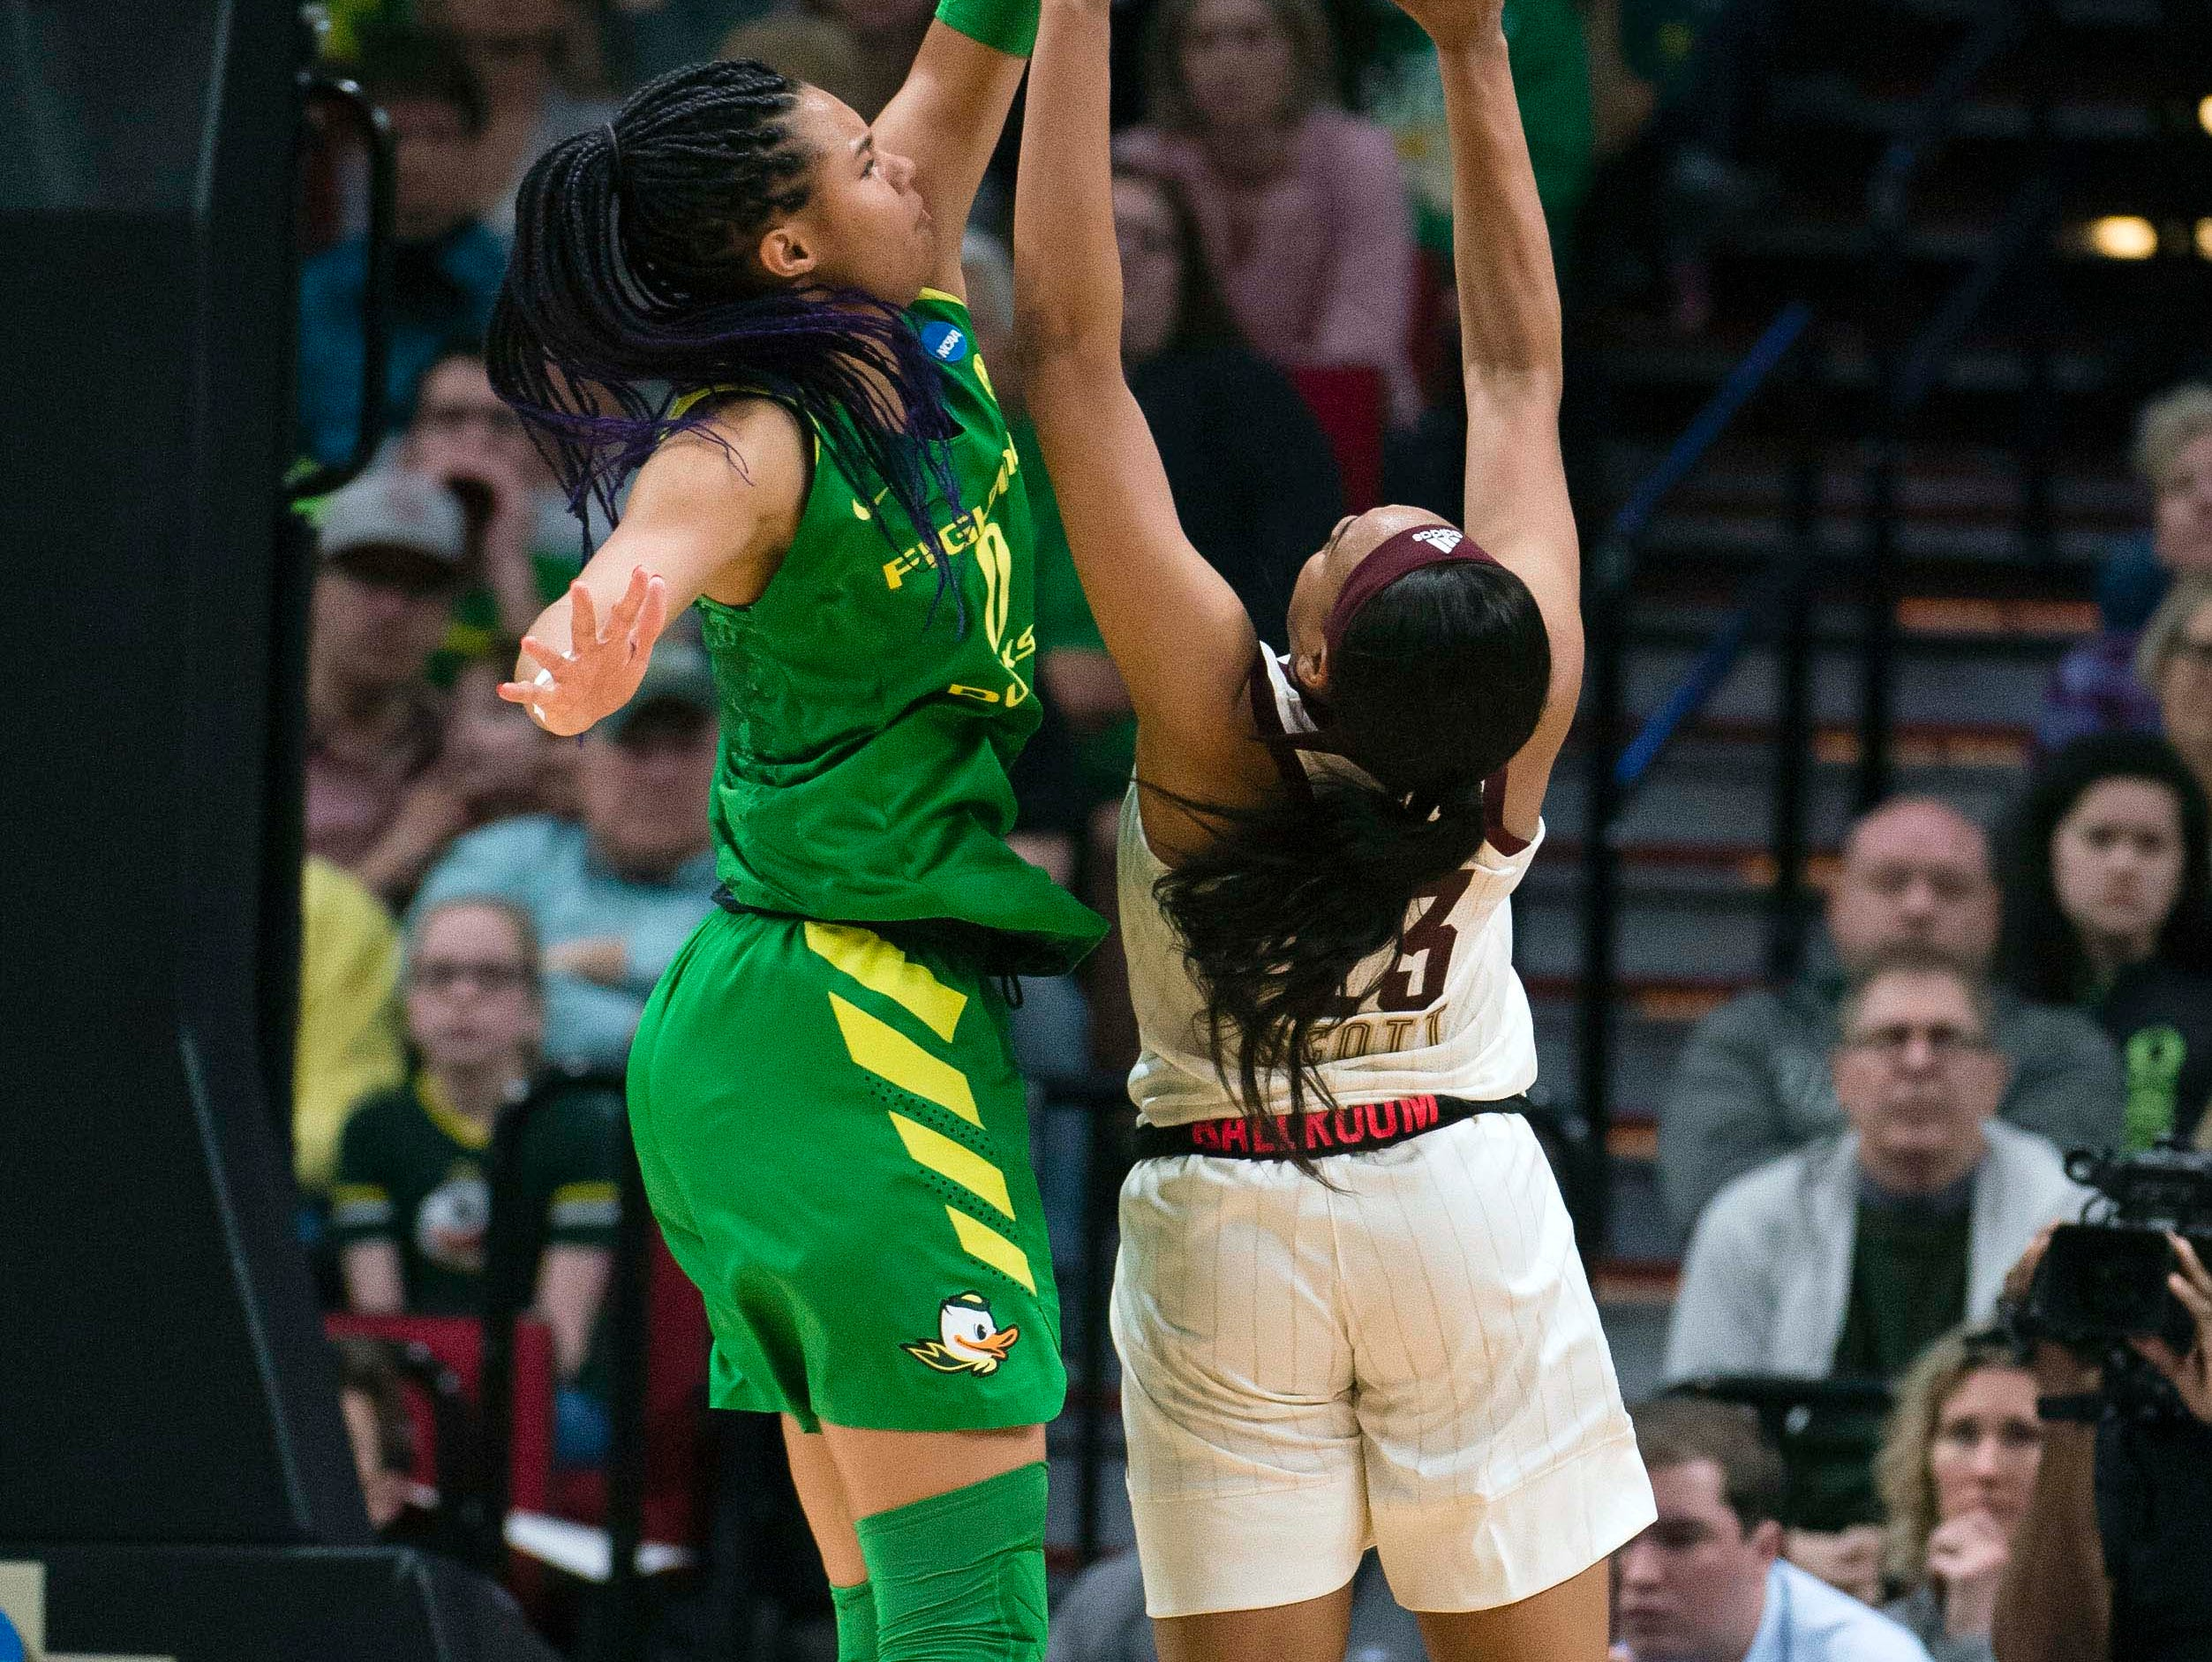 Oregon Ducks forward Satou Sabally (0) guards Mississippi State Bulldogs guard Bre'Amber Scott (23) during the first half in the championship game of the Portland regional in the women's 2019 NCAA Tournament at Moda Center.